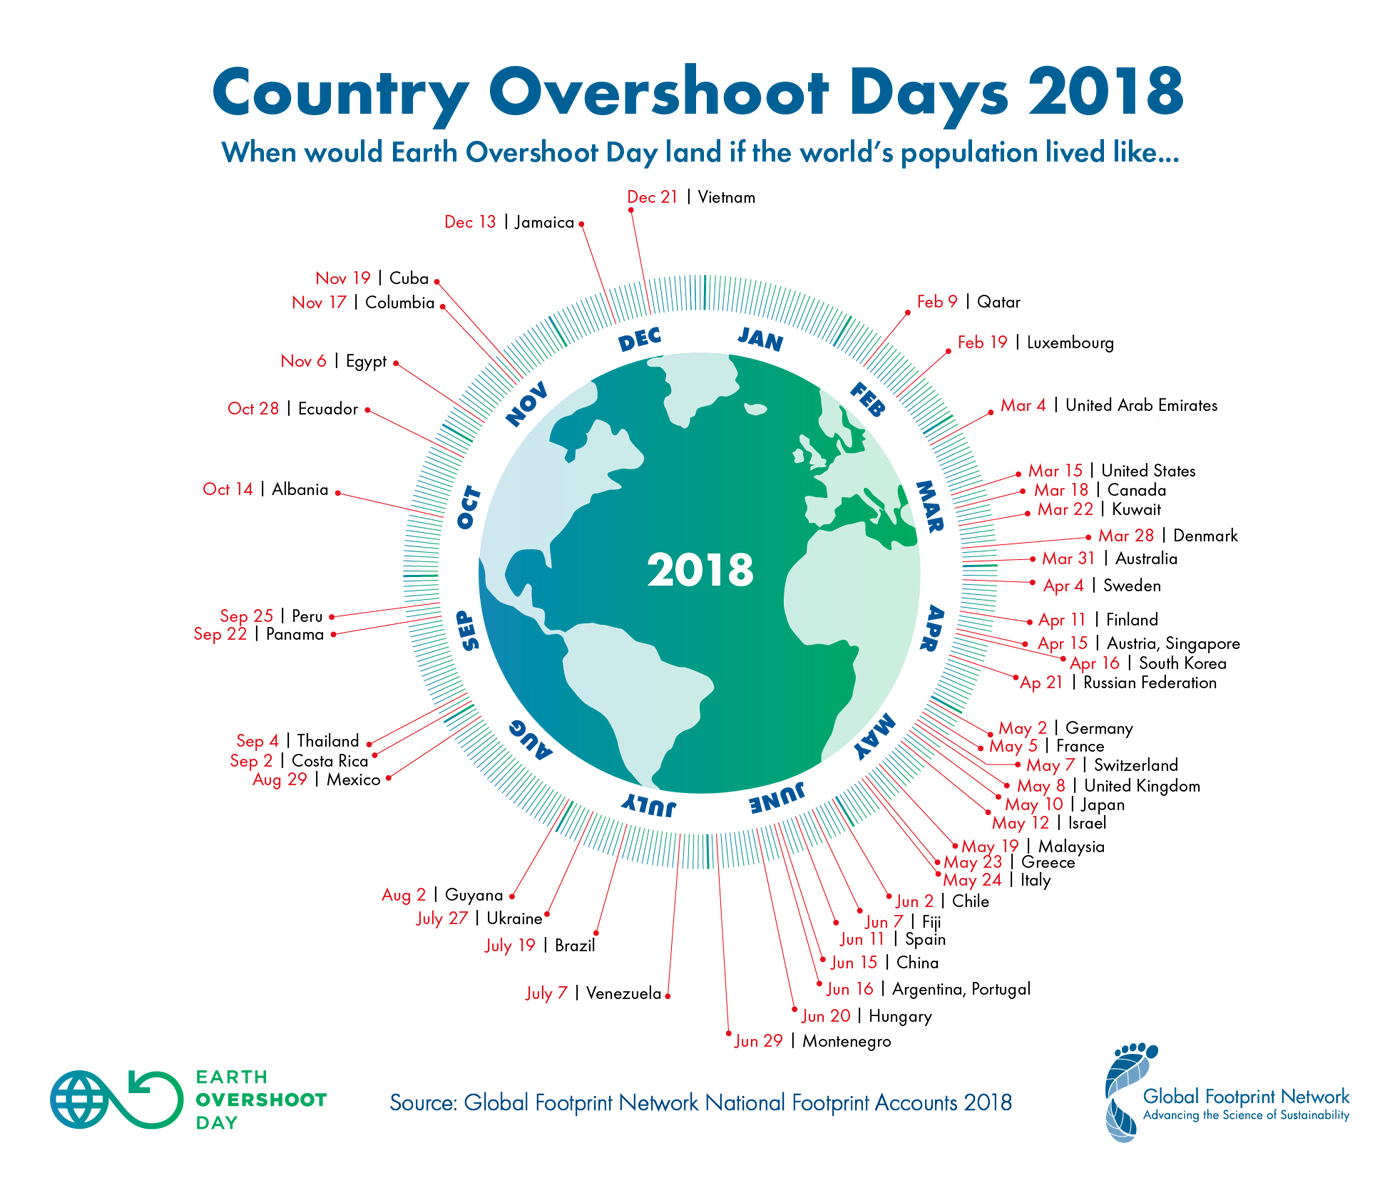 2018 Country Overshoot Days large